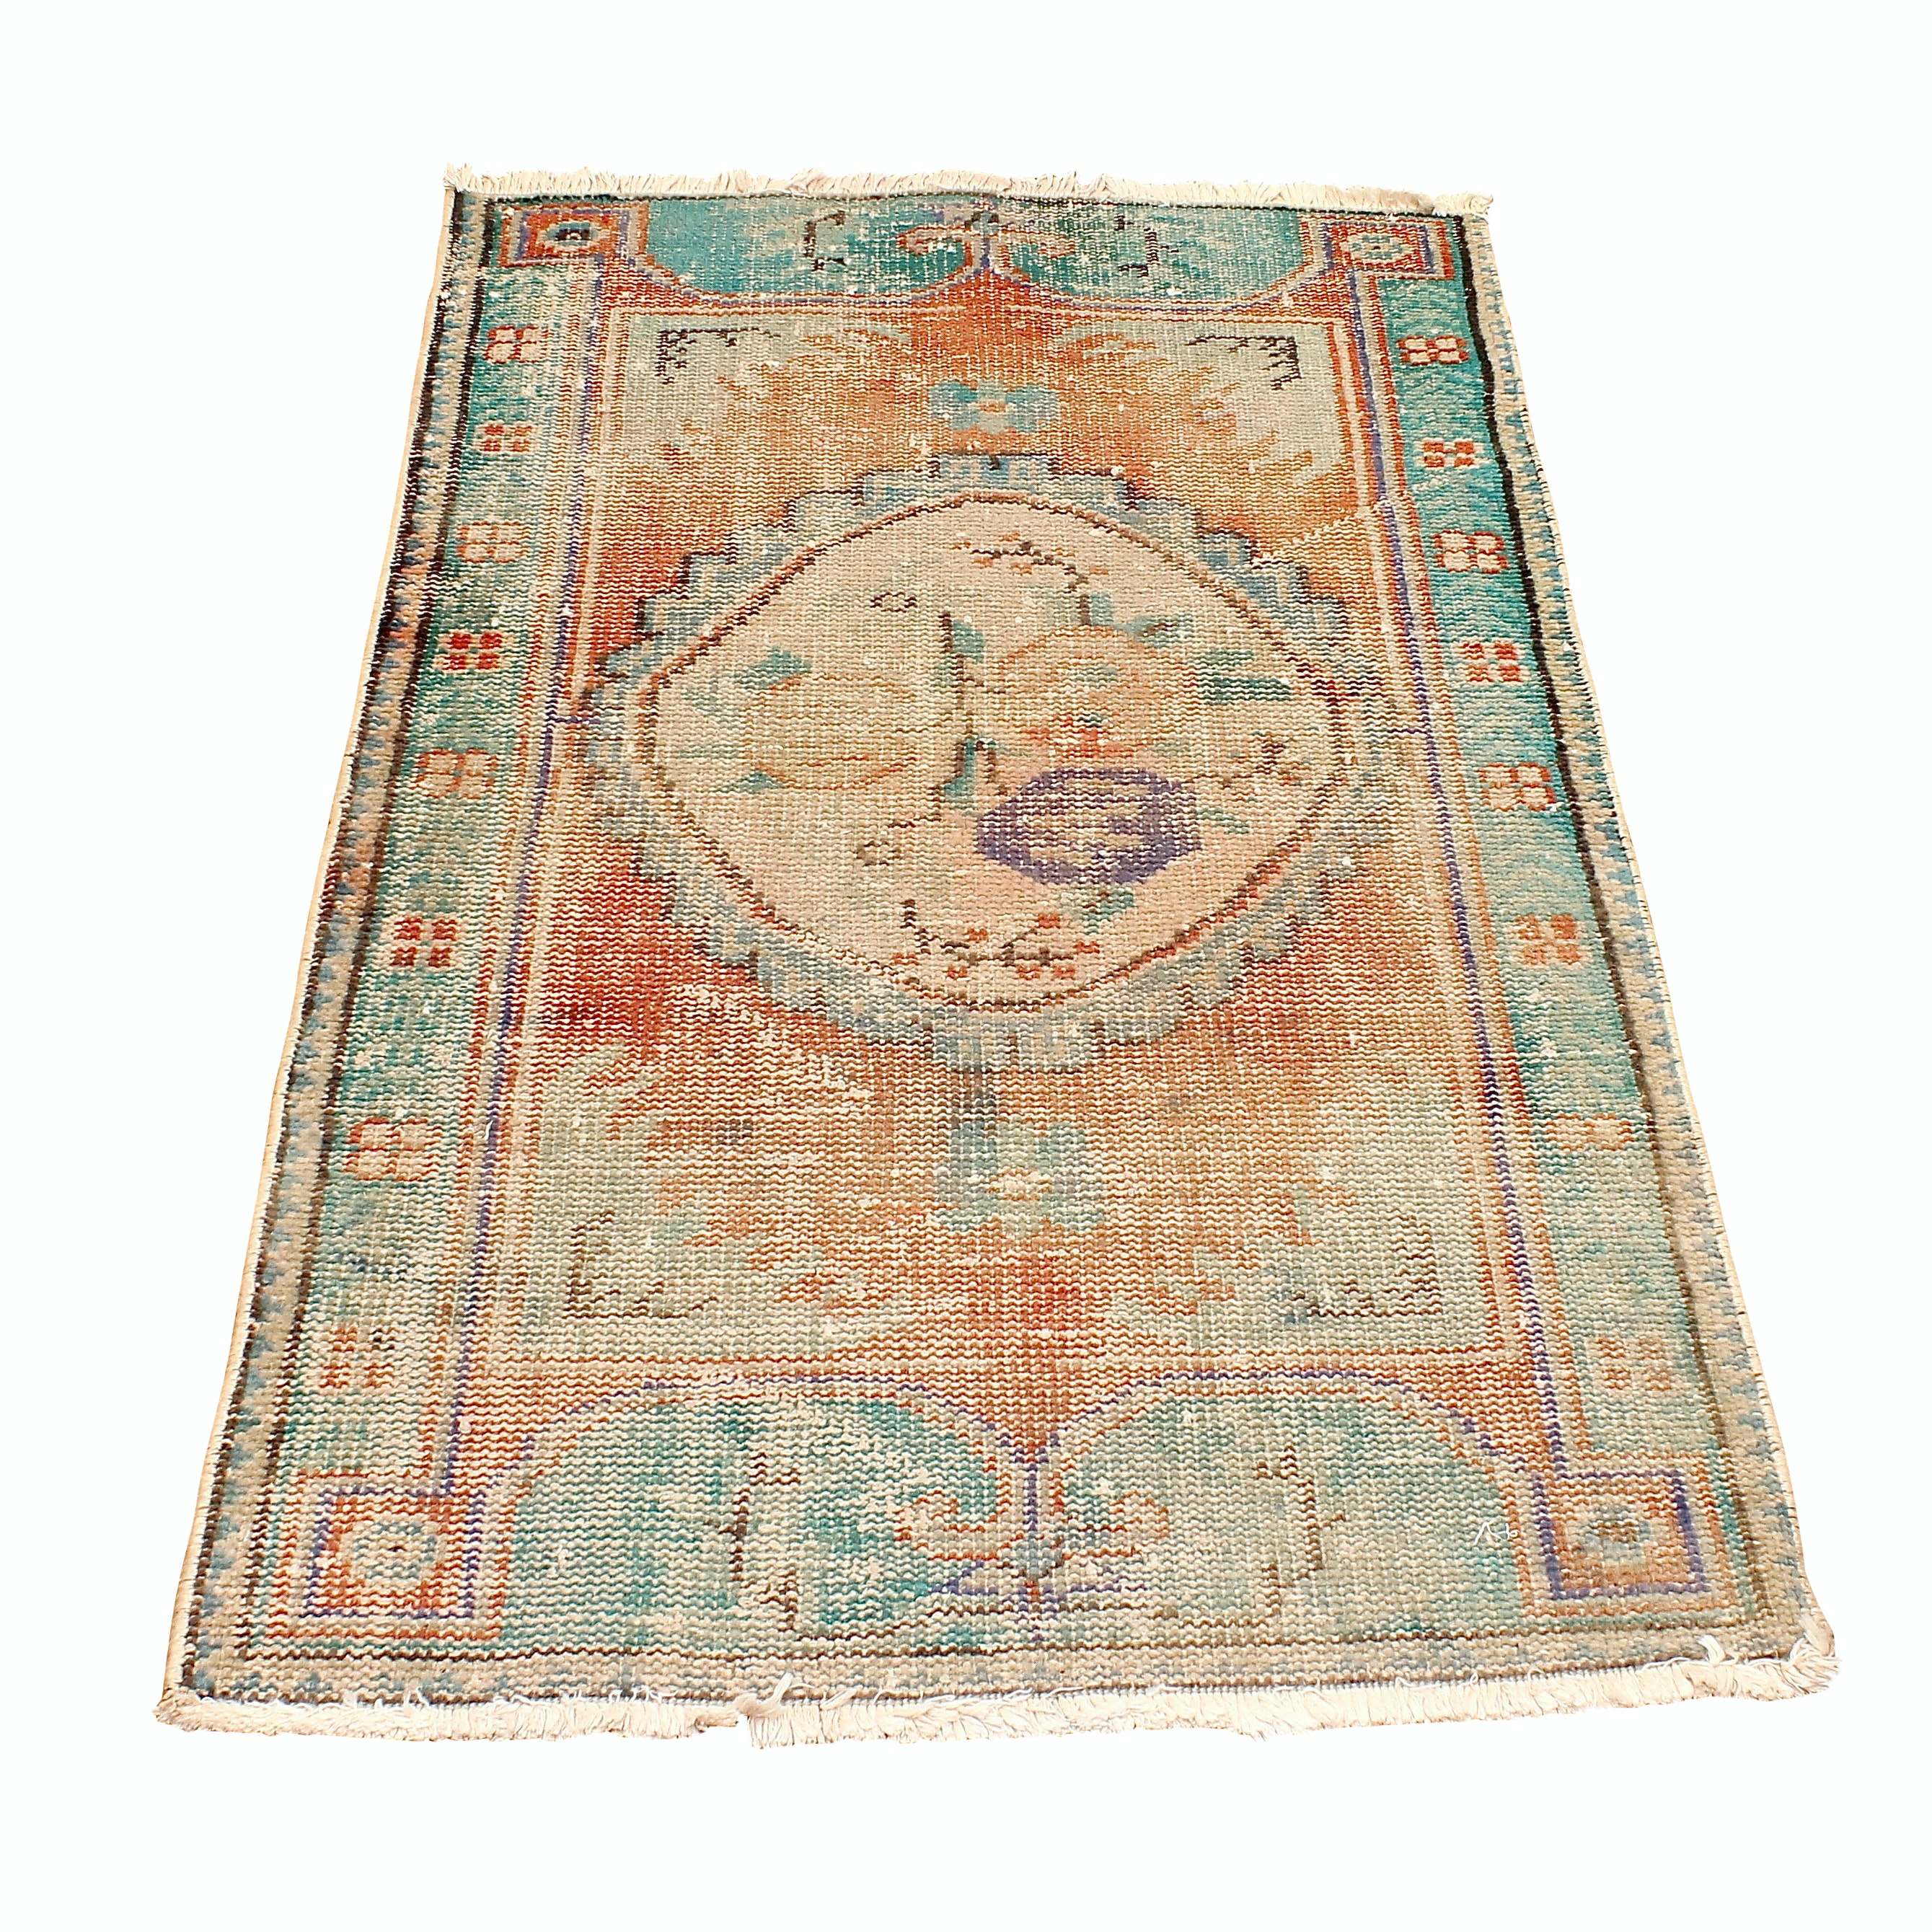 Antique Handwoven Pictorial Accent Rug